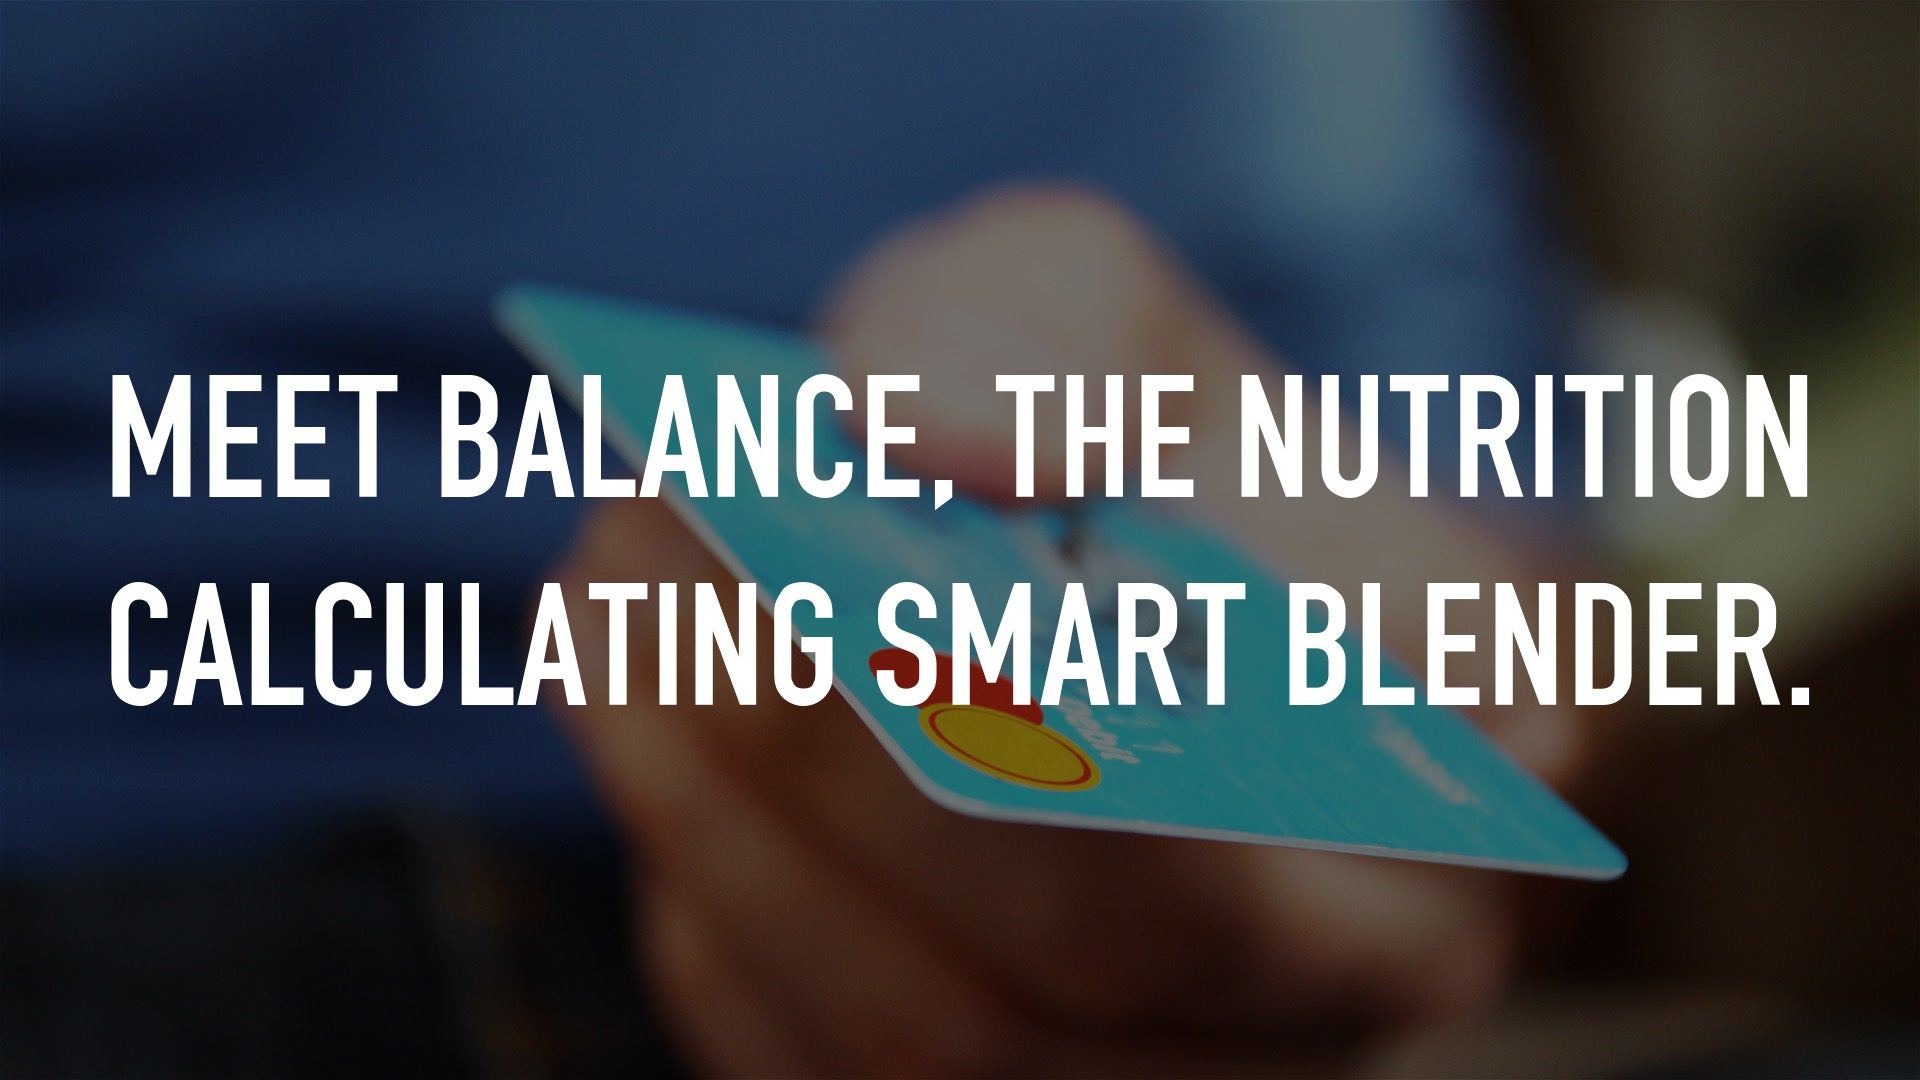 Meet Balance, the nutrition calculating smart blender.